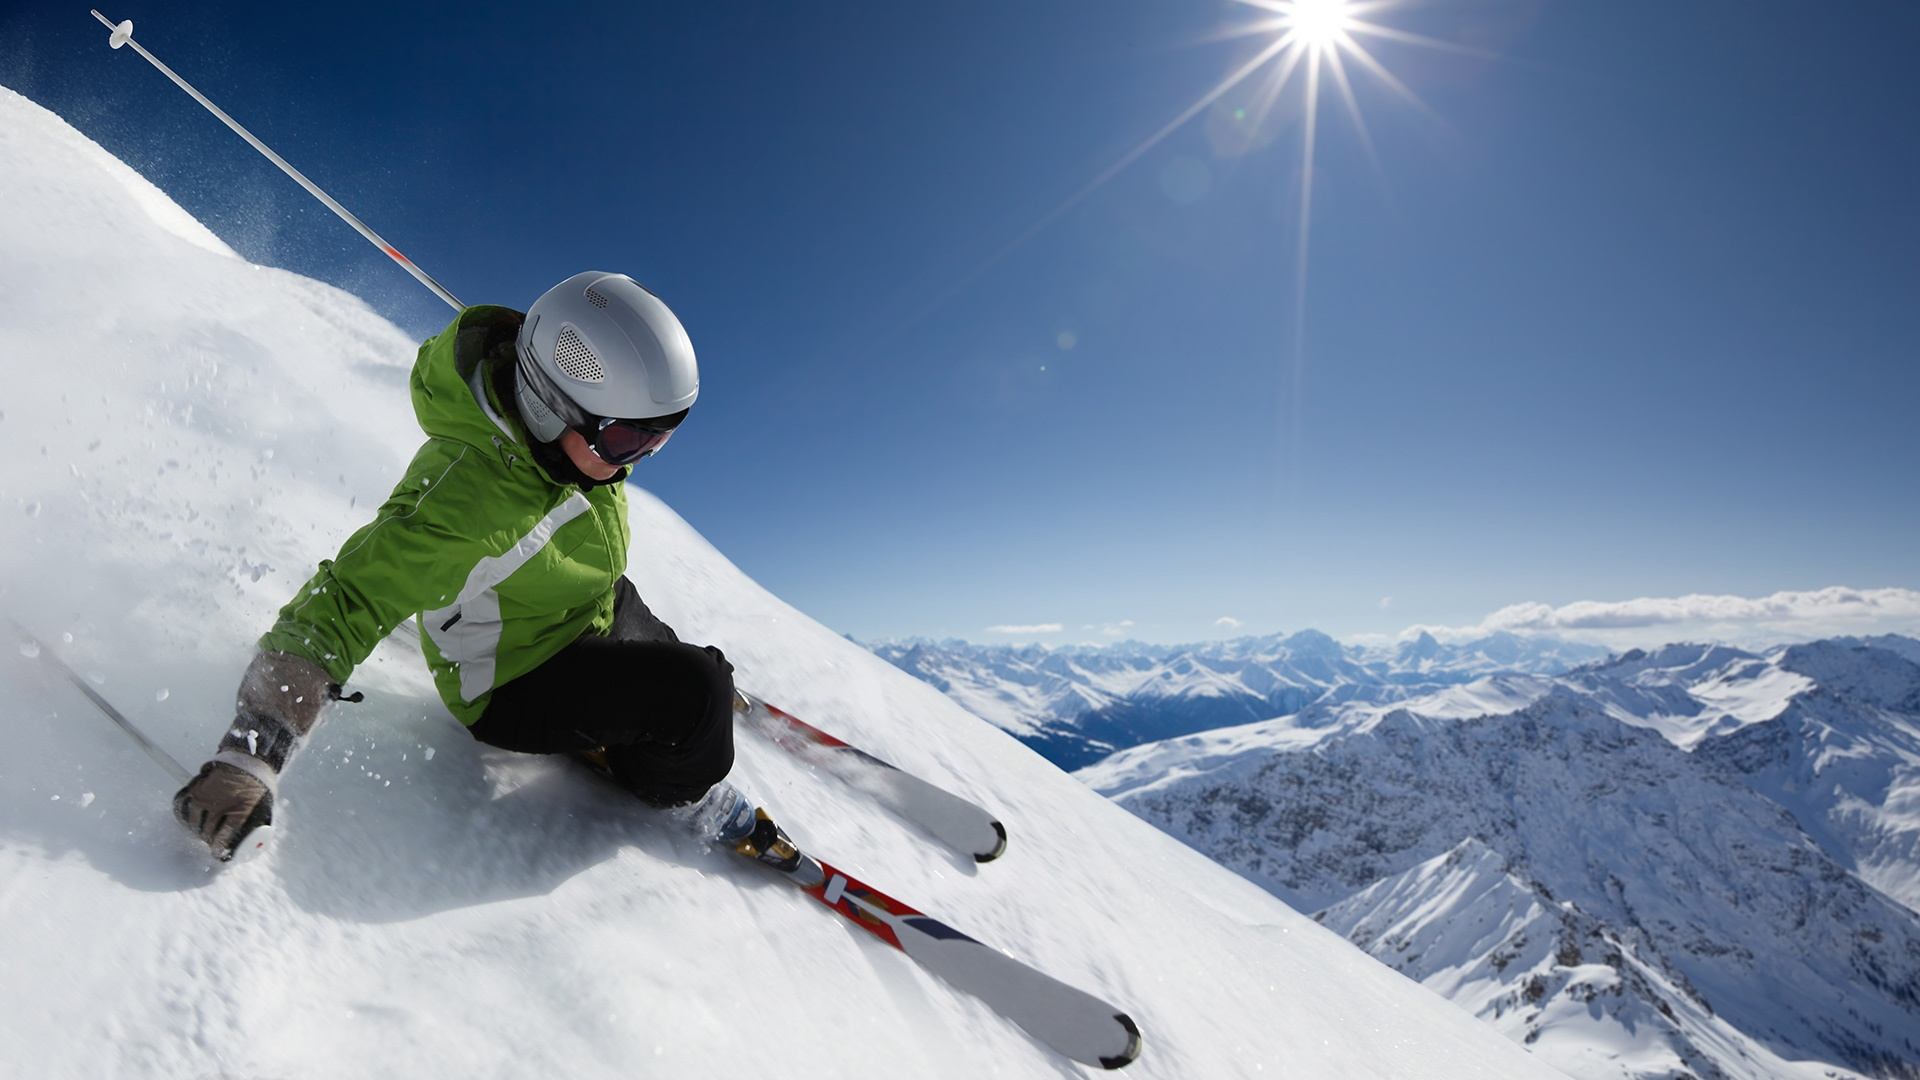 12 ski hd wallpapers | background images - wallpaper abyss